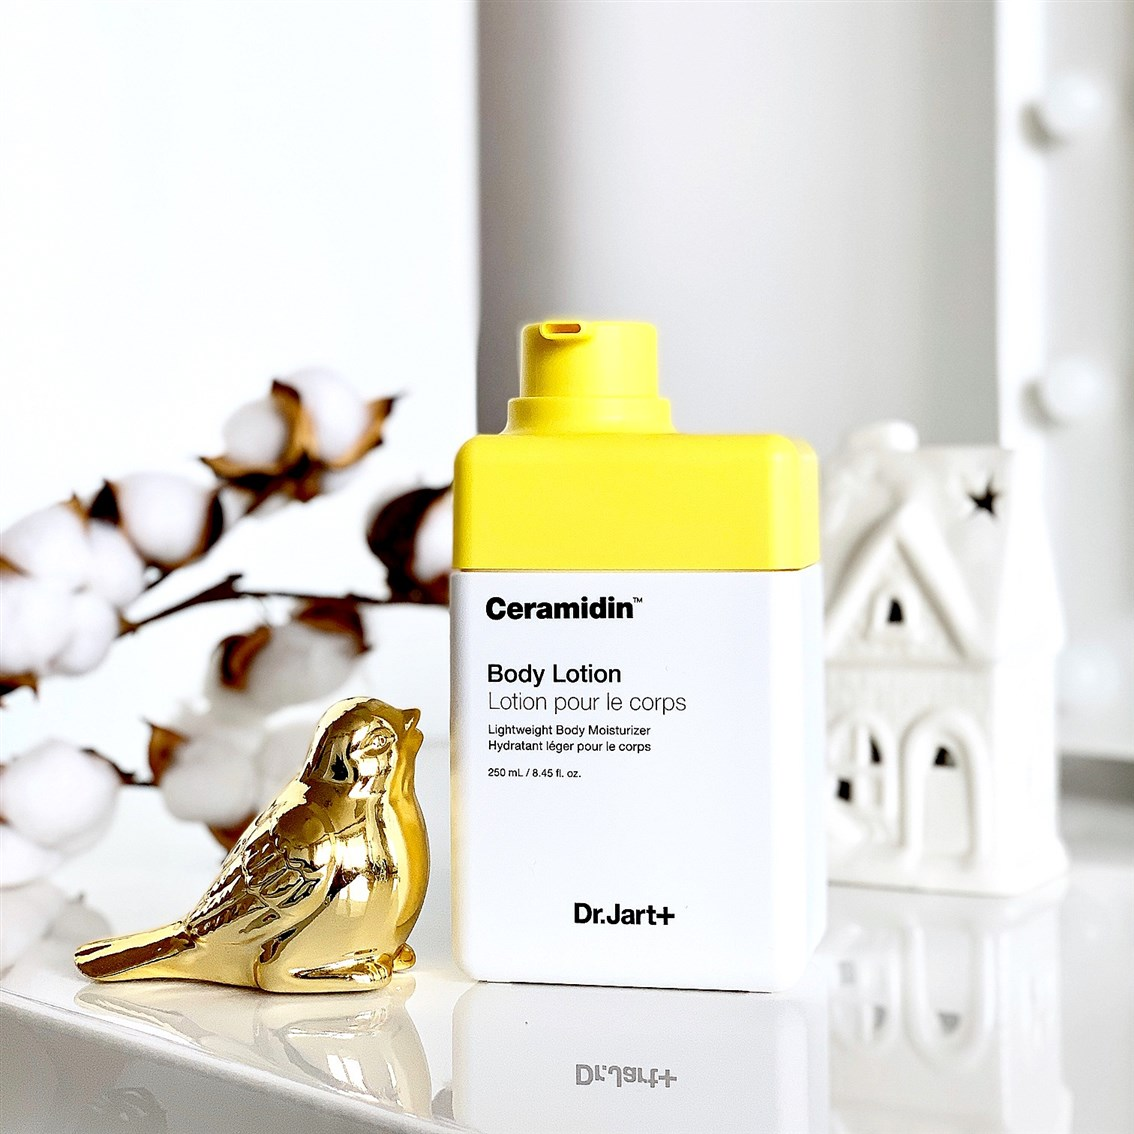 Dr. Jart+ Ceramidin Body Lotion blog